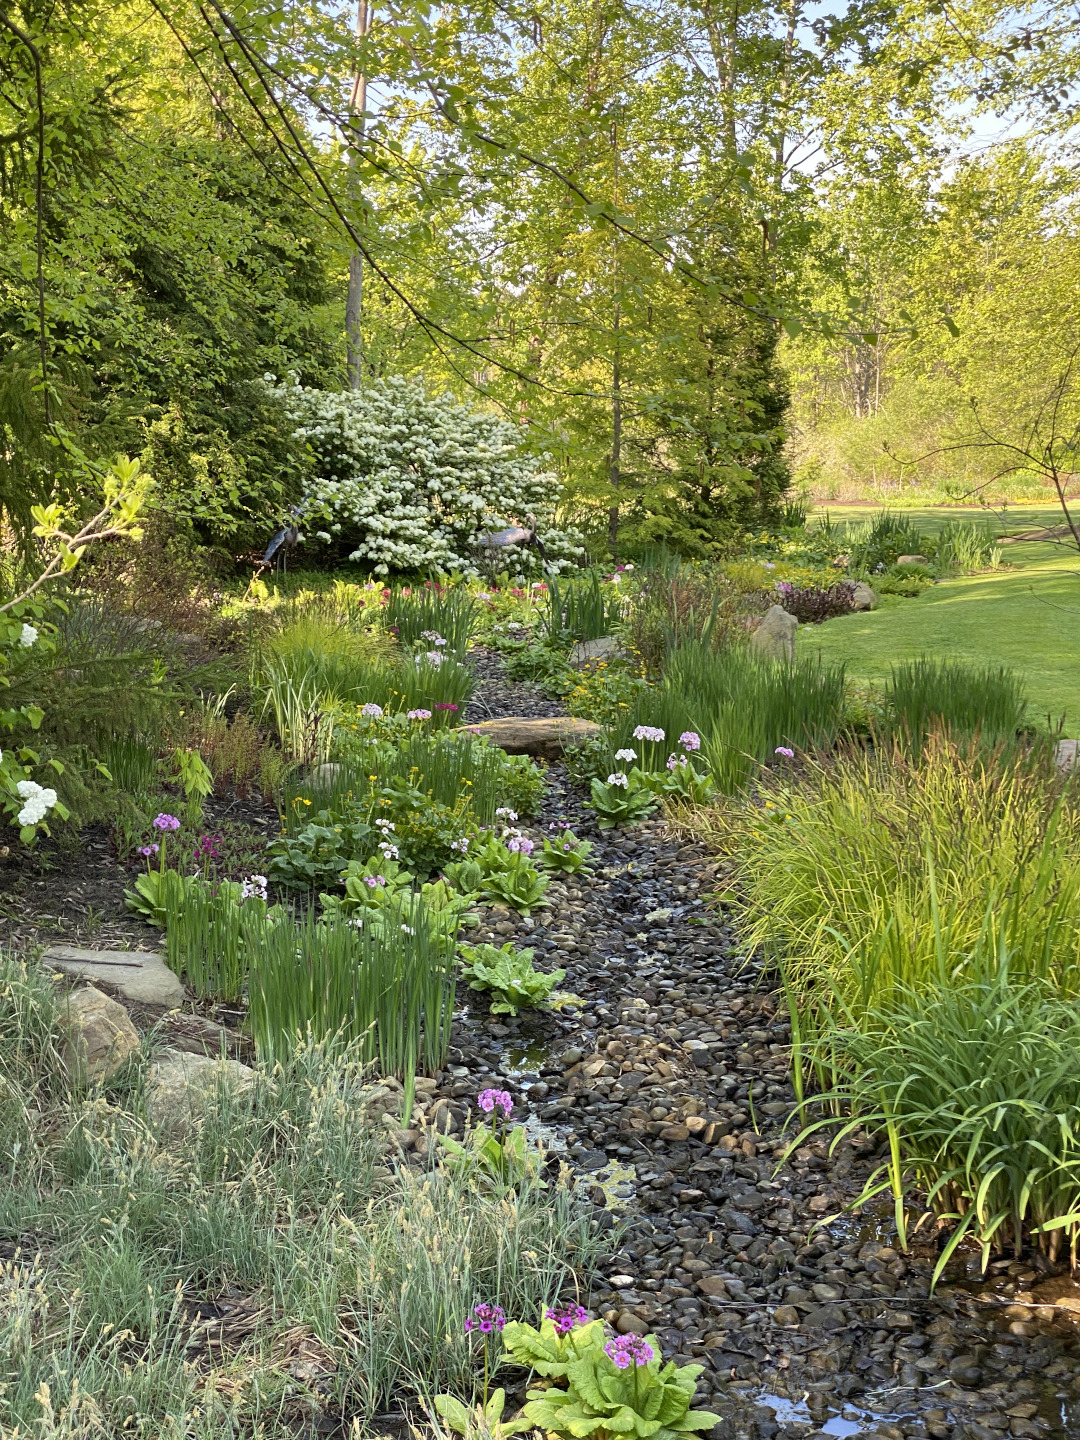 Garden view with lawn on the right and dry stream bed to the left